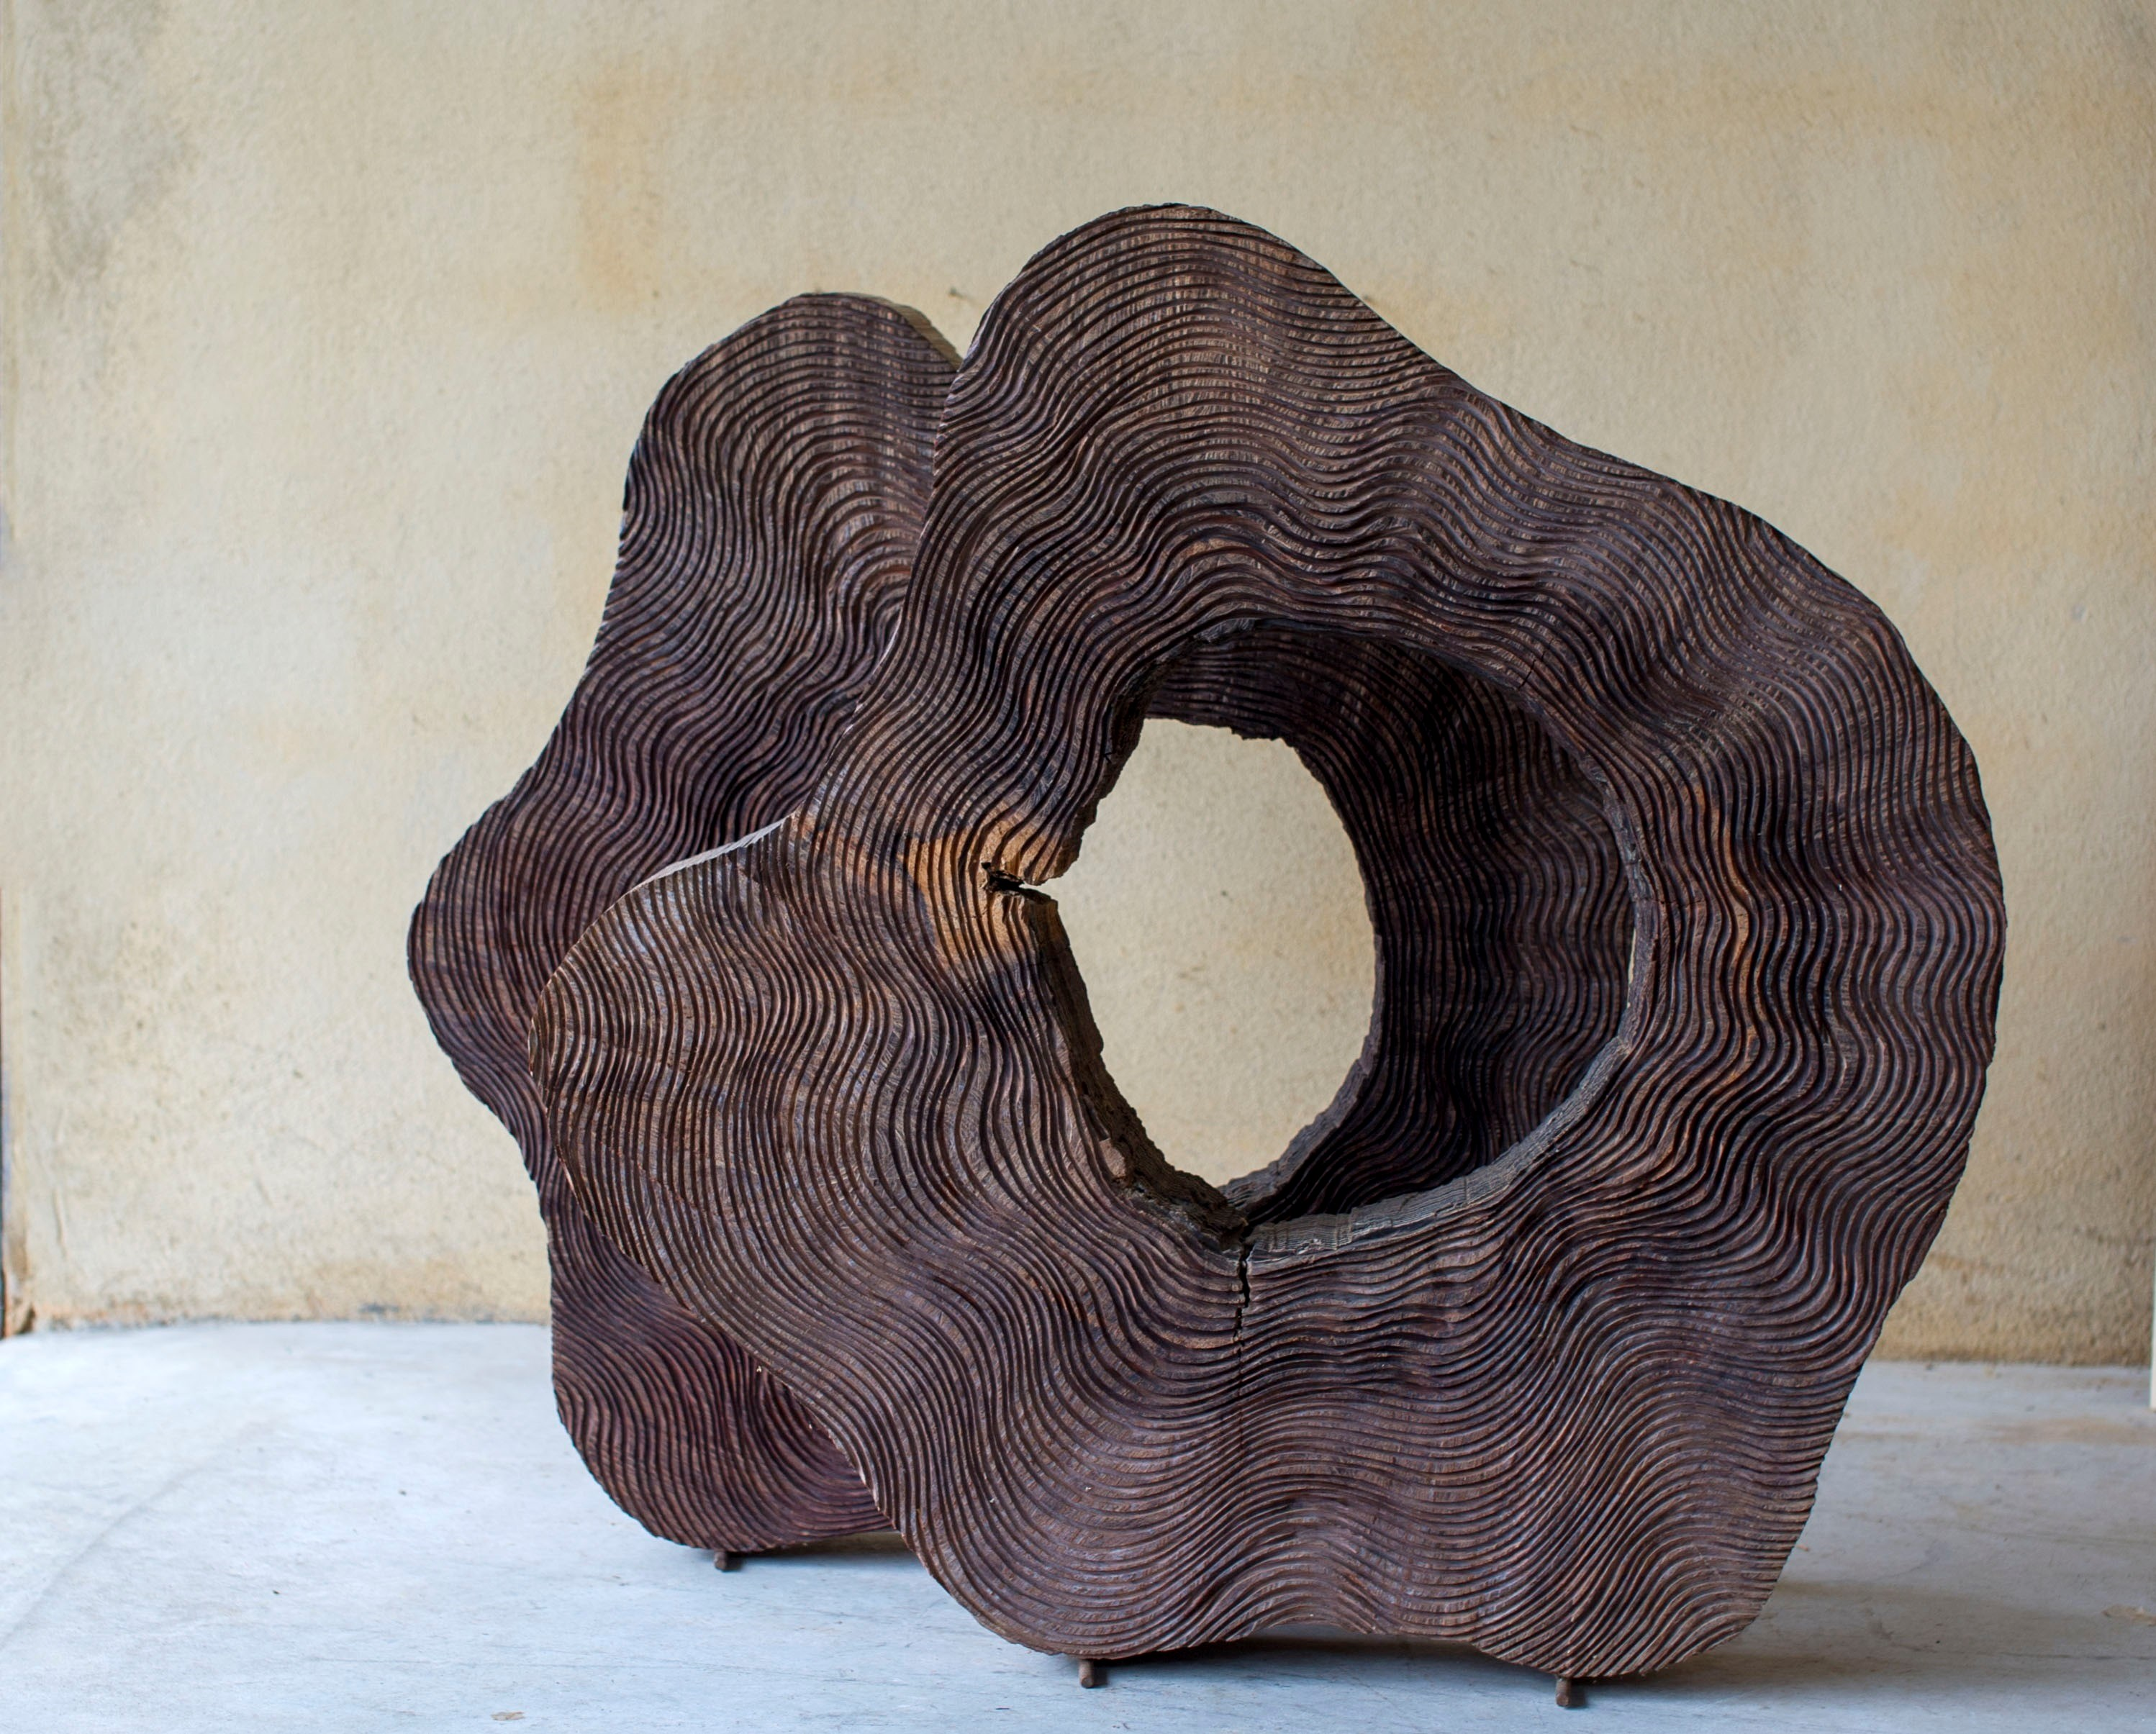 Rodelas, original Nature Wood Sculpture by Paulo Neves